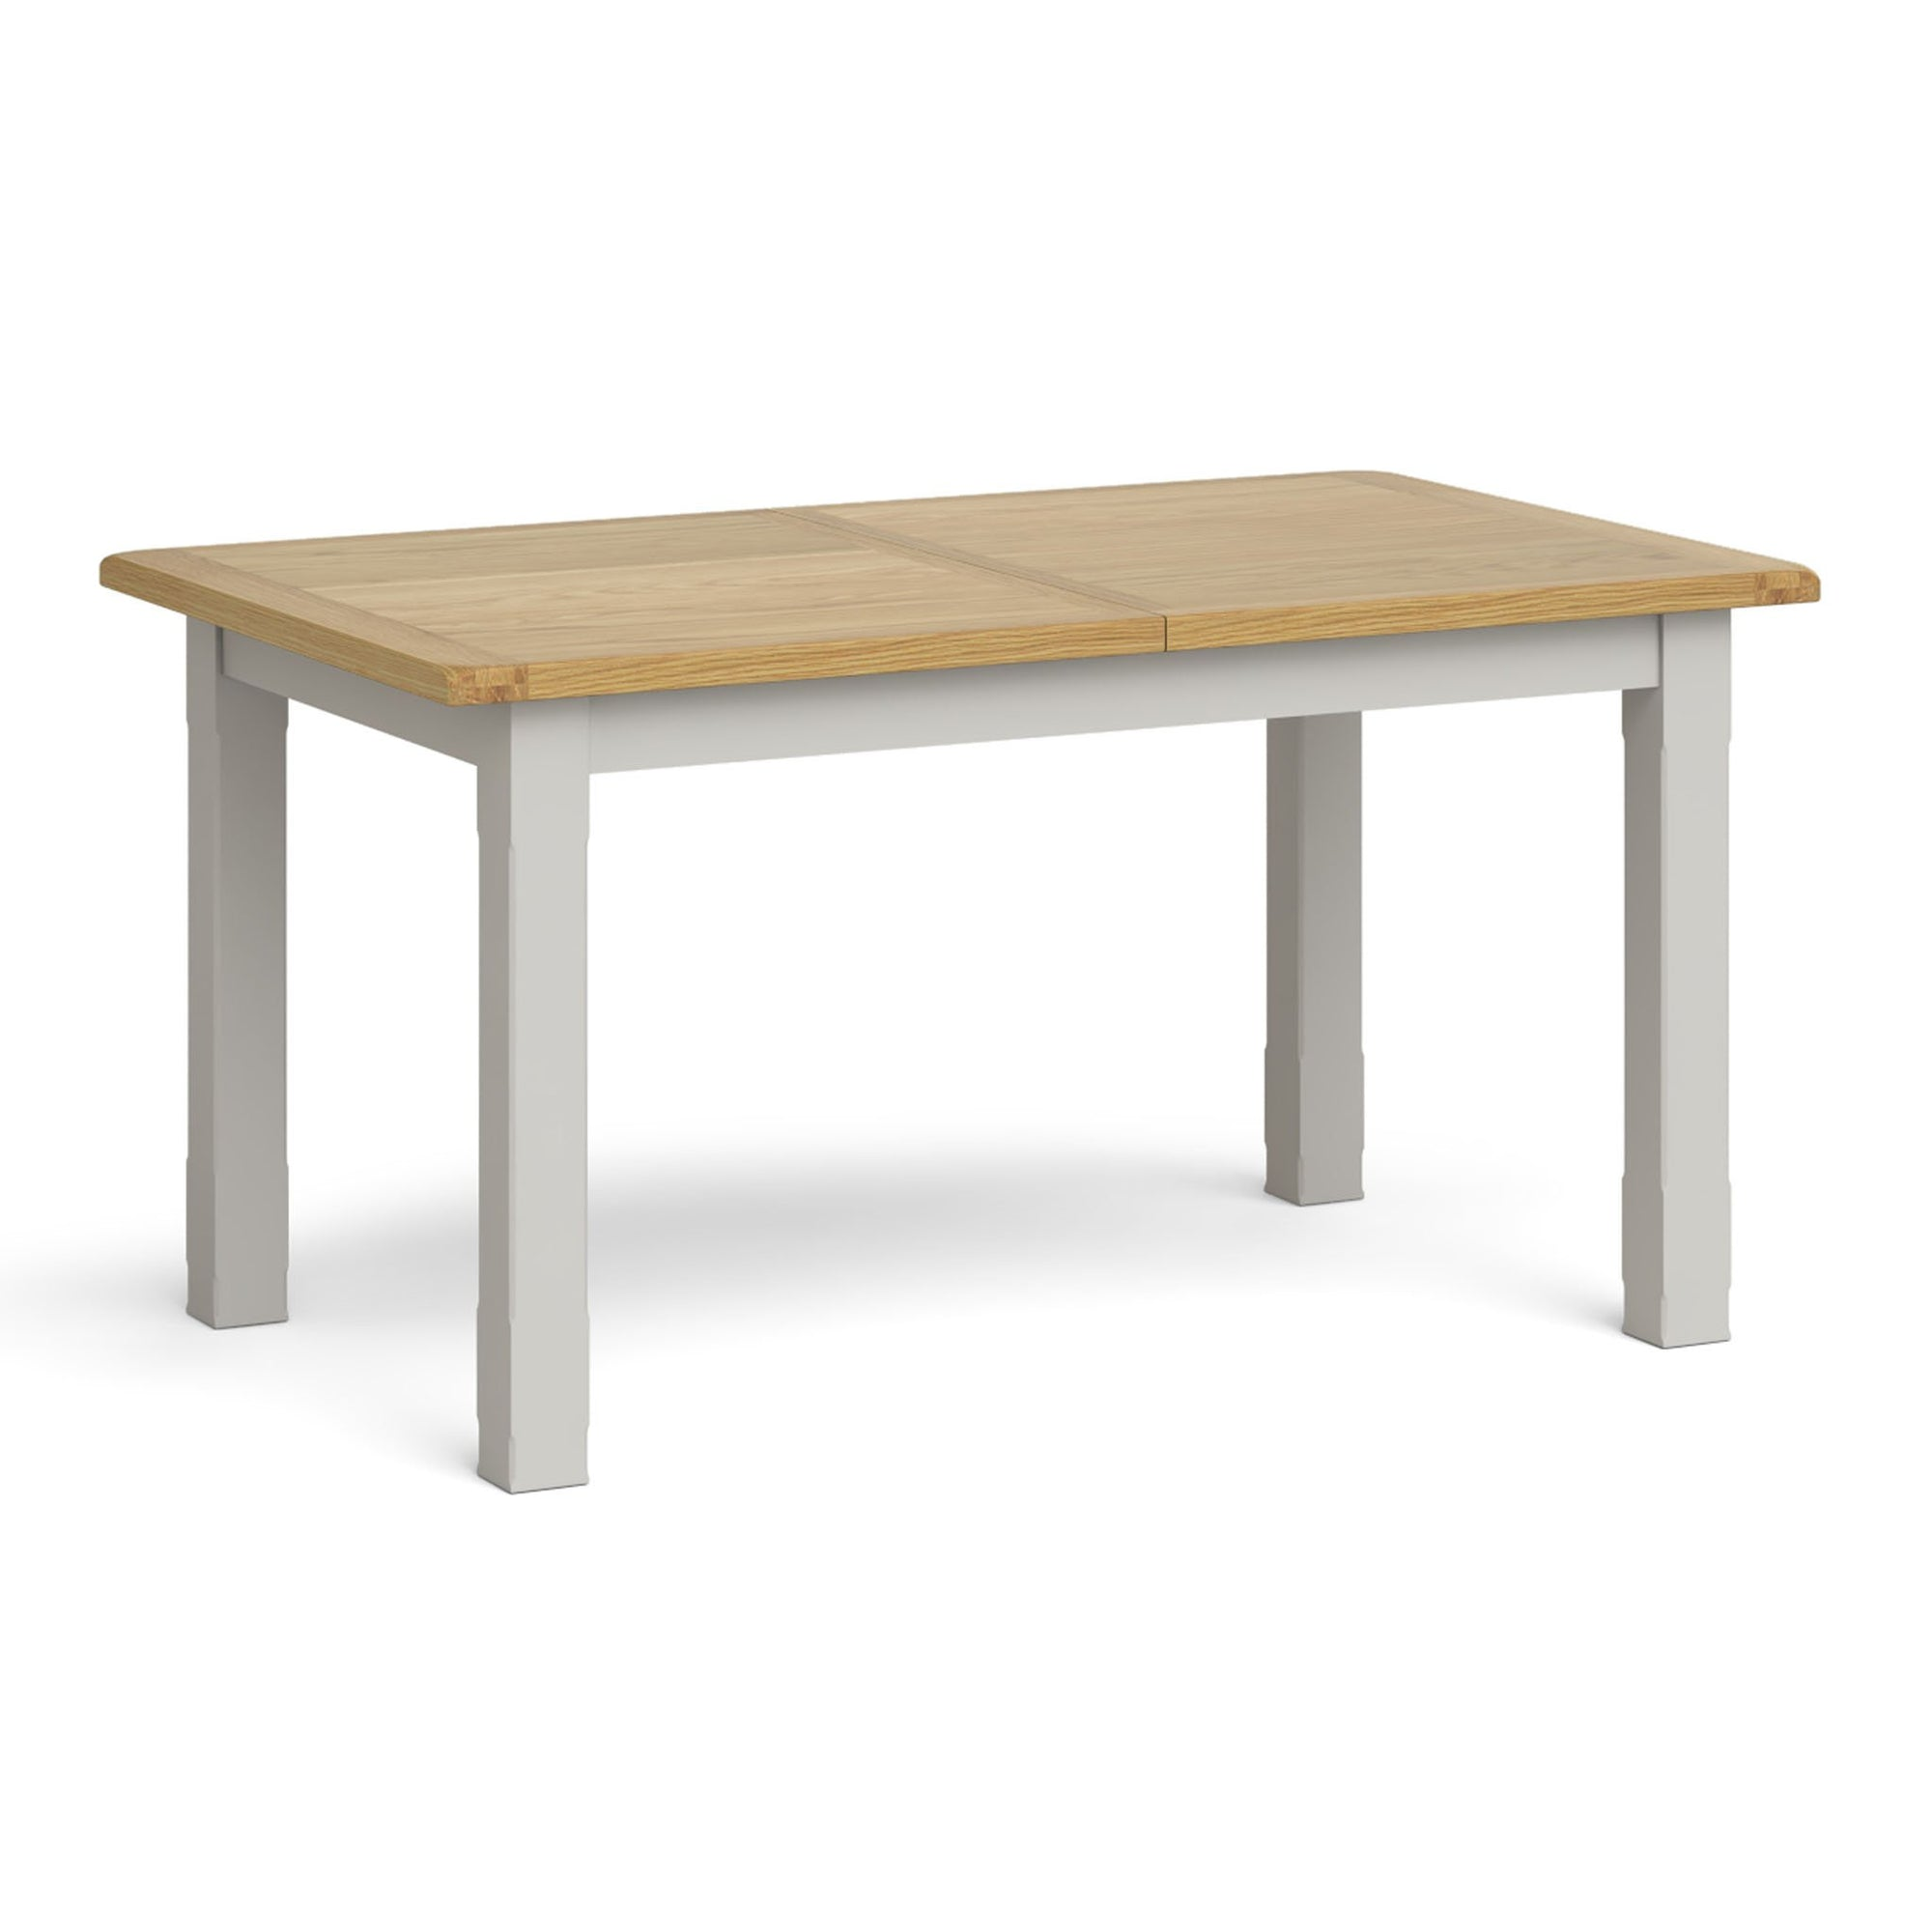 Lundy Grey Small Extending Oak Topped Dining Table by Roseland Furniture